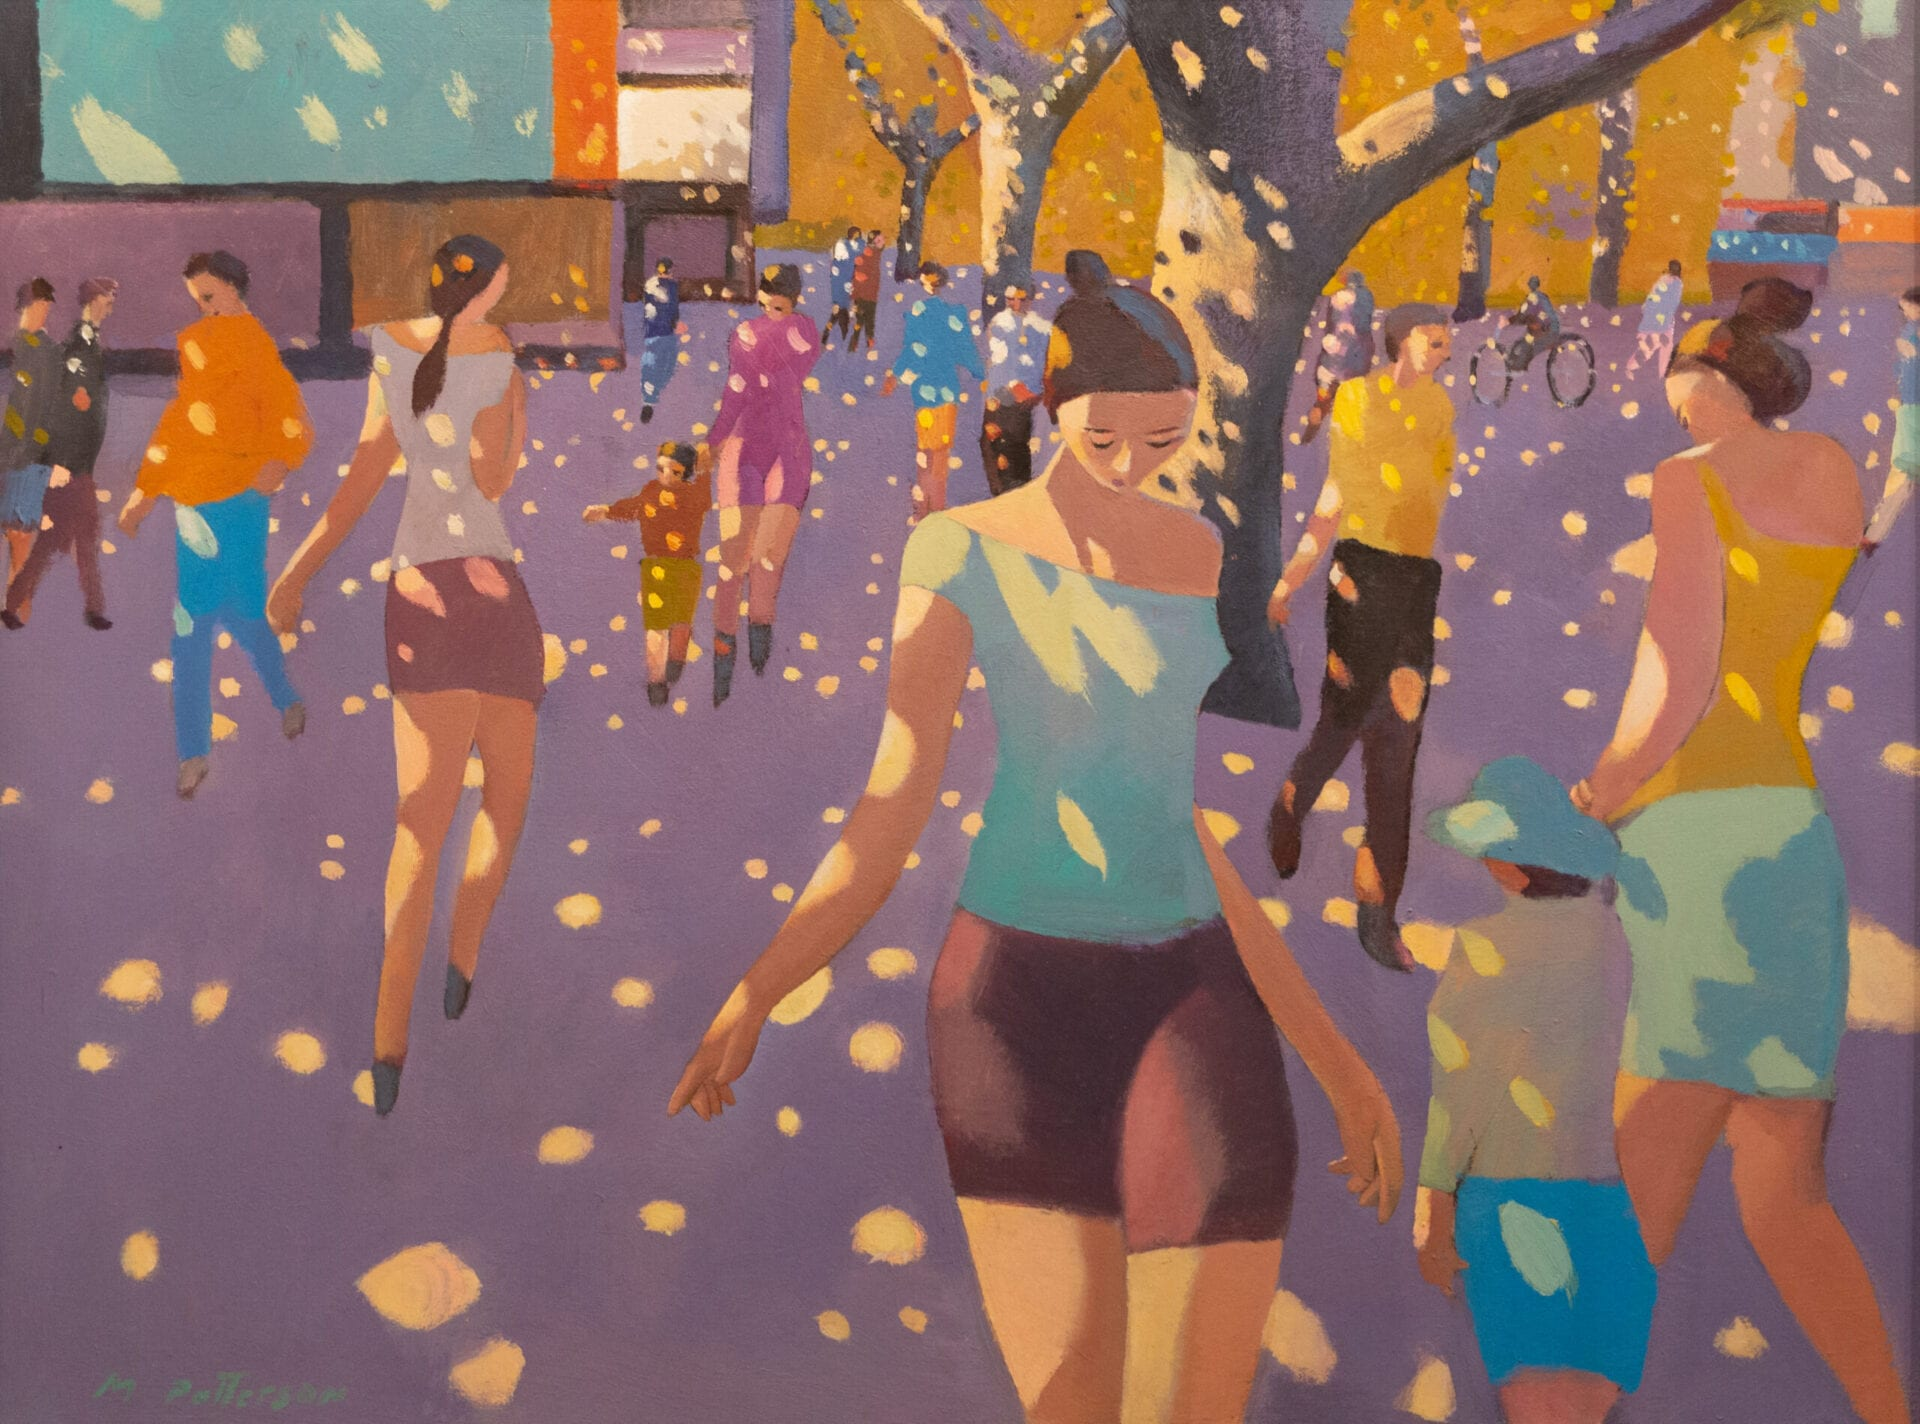 Michael Patterson - Dappled Streets Series: E. Village Teal Shirt